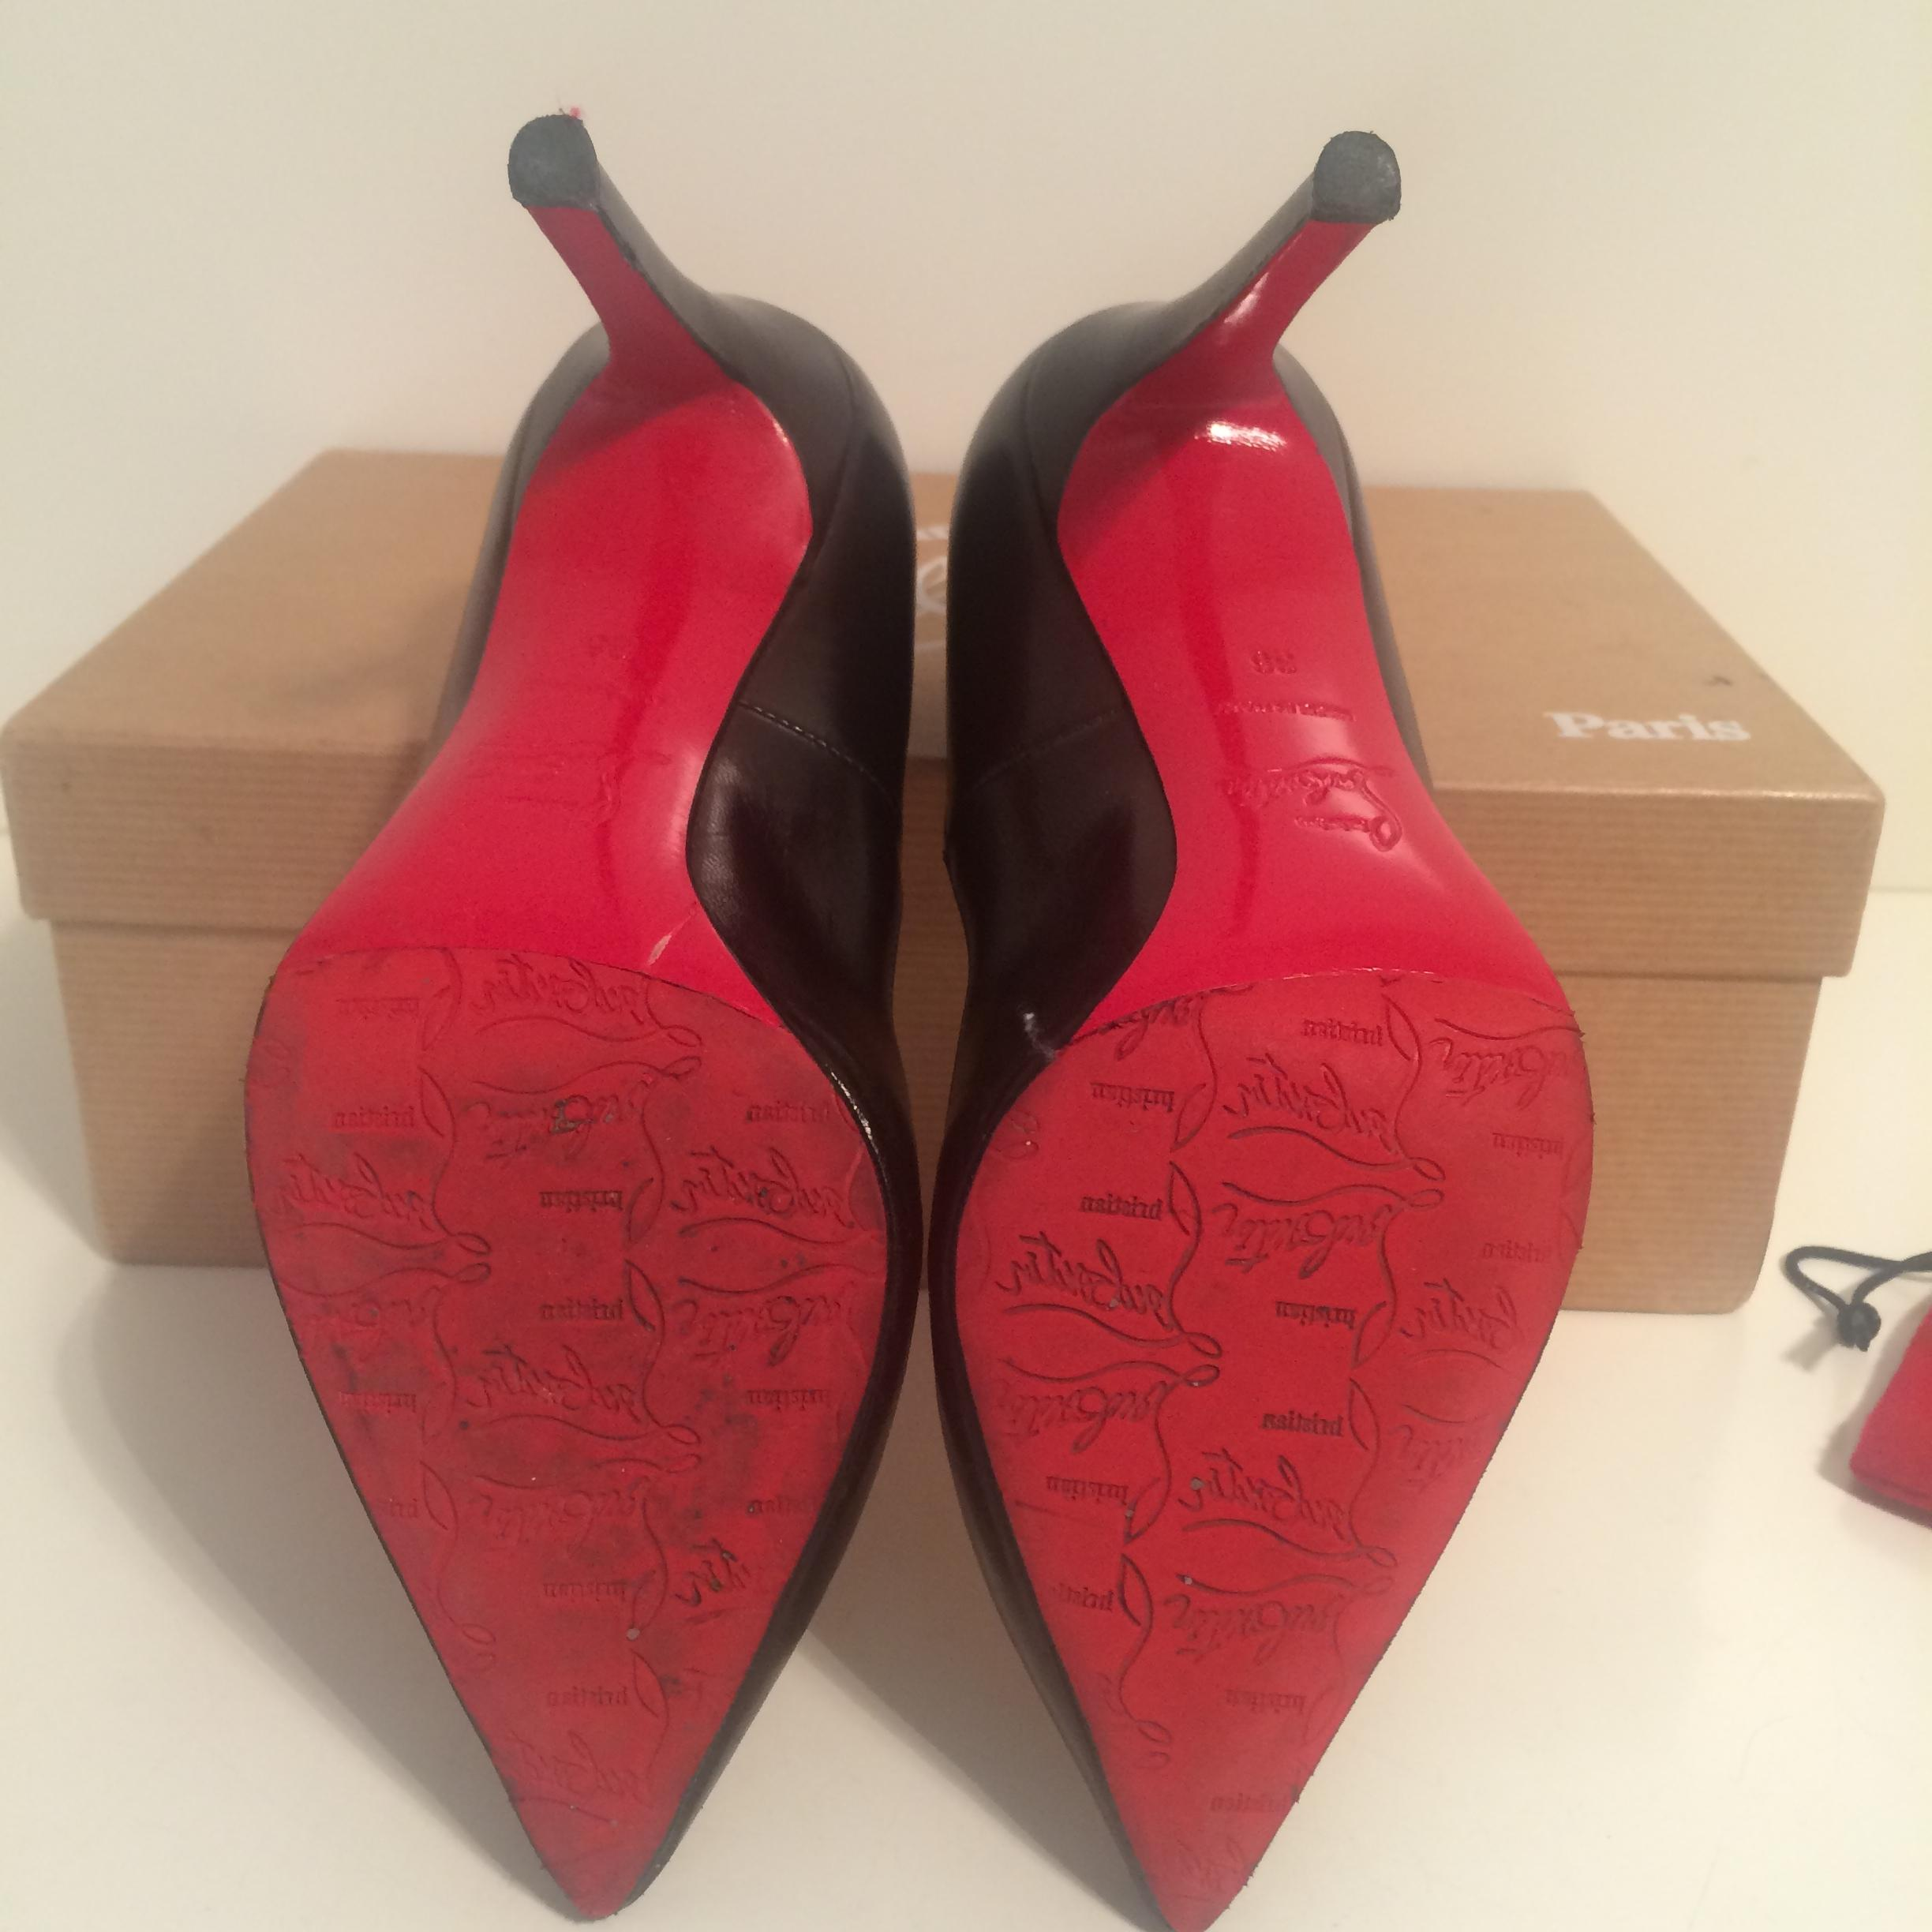 455d82ab8aaa ... Christian Louboutin Black Pigalle 100 Leather Leather Leather Eu 36 - 6  Pumps Size US 5.5 ...